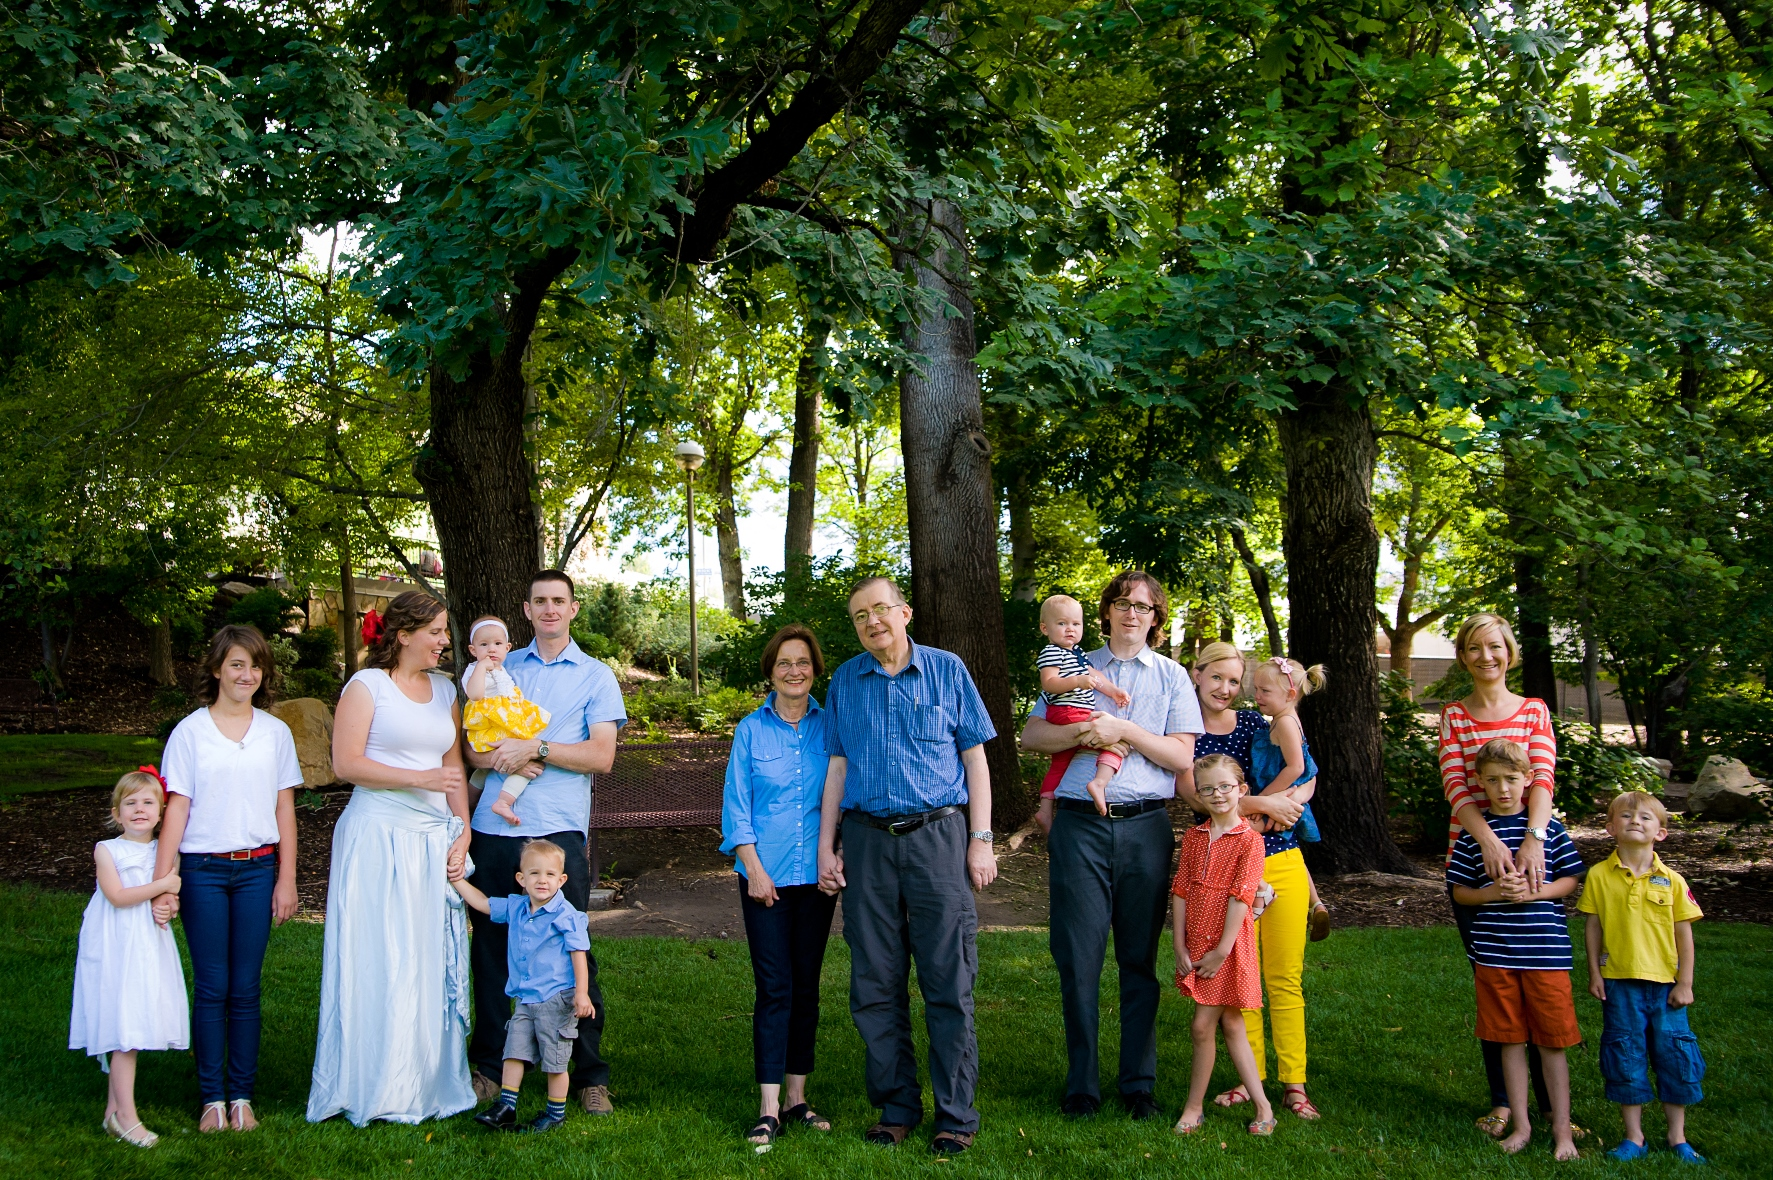 Picture #13 - Haltern family - less detail